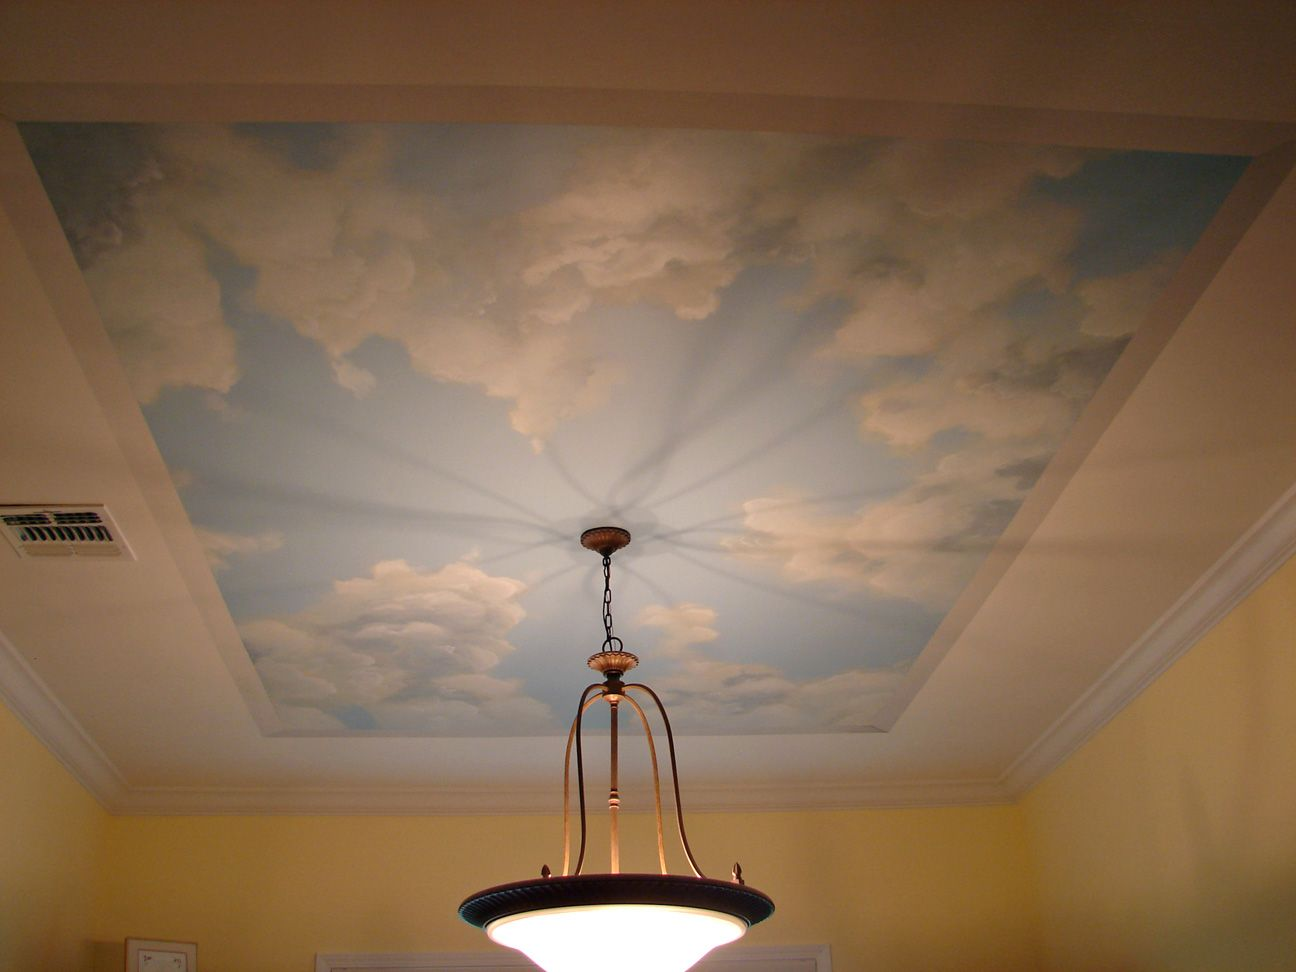 full view of a hand painted dining room ceiling sky cloud mural